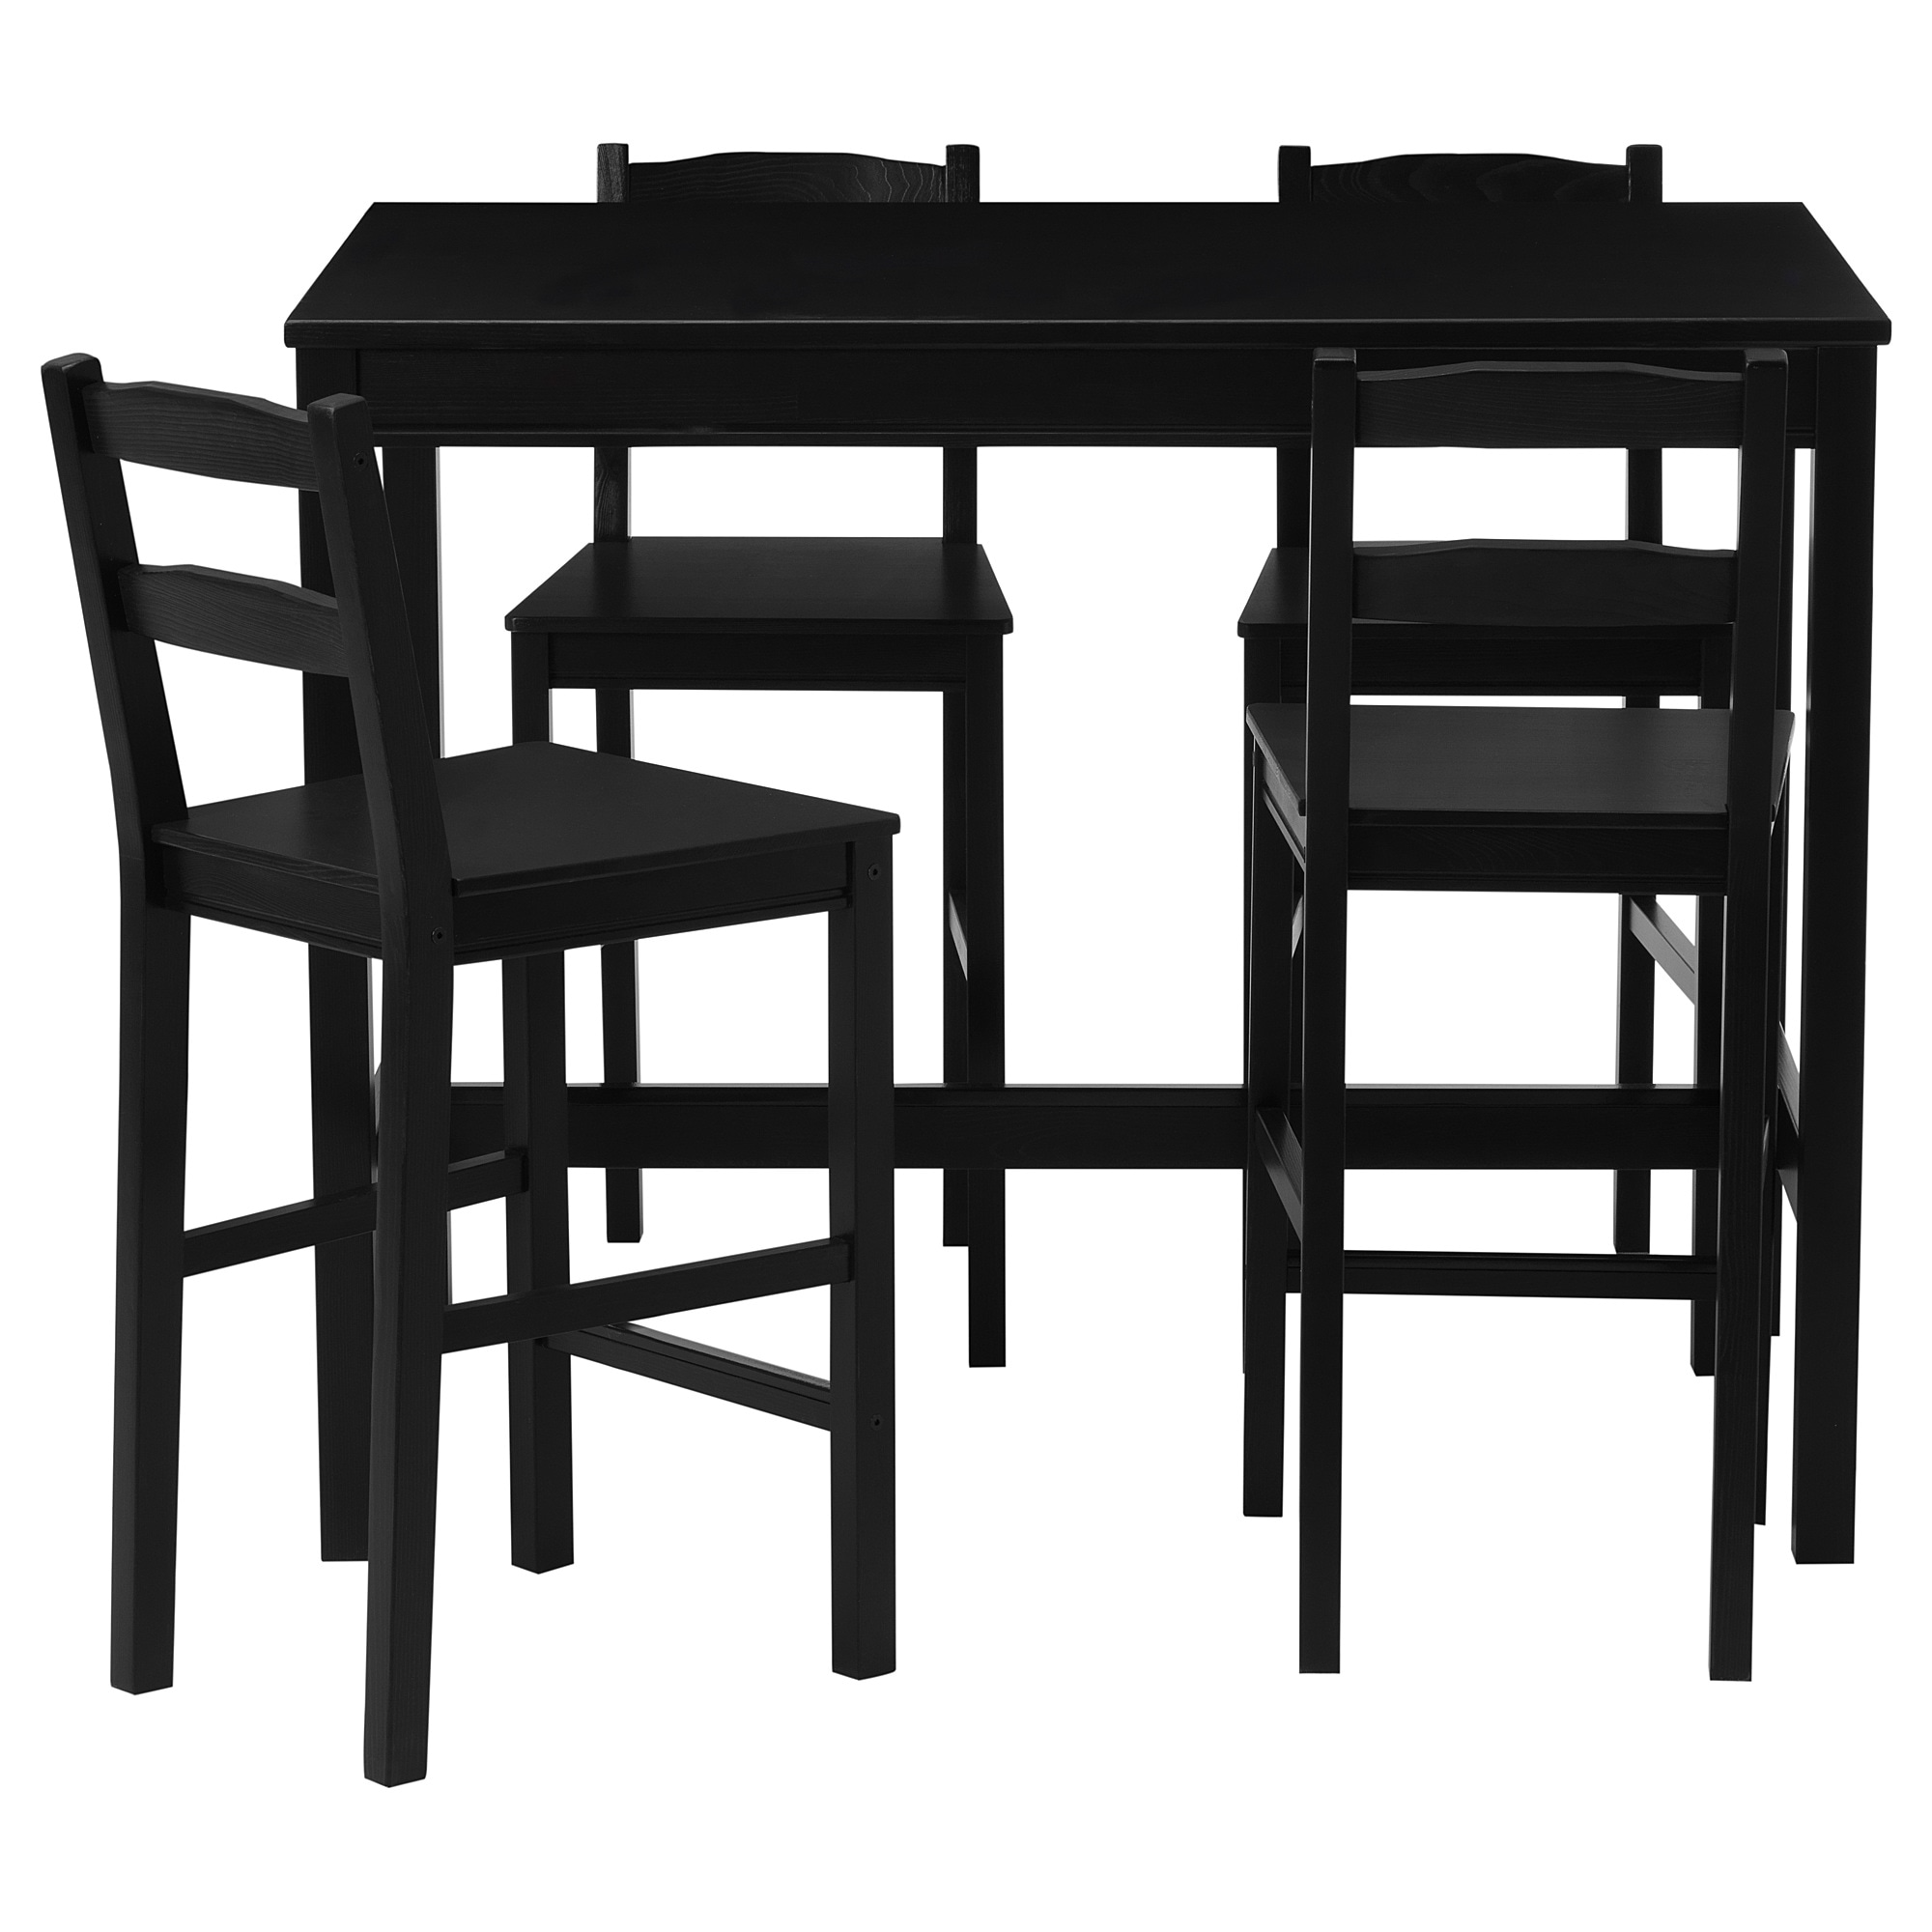 Bar Tables \u0026 Bar Stools - IKEA